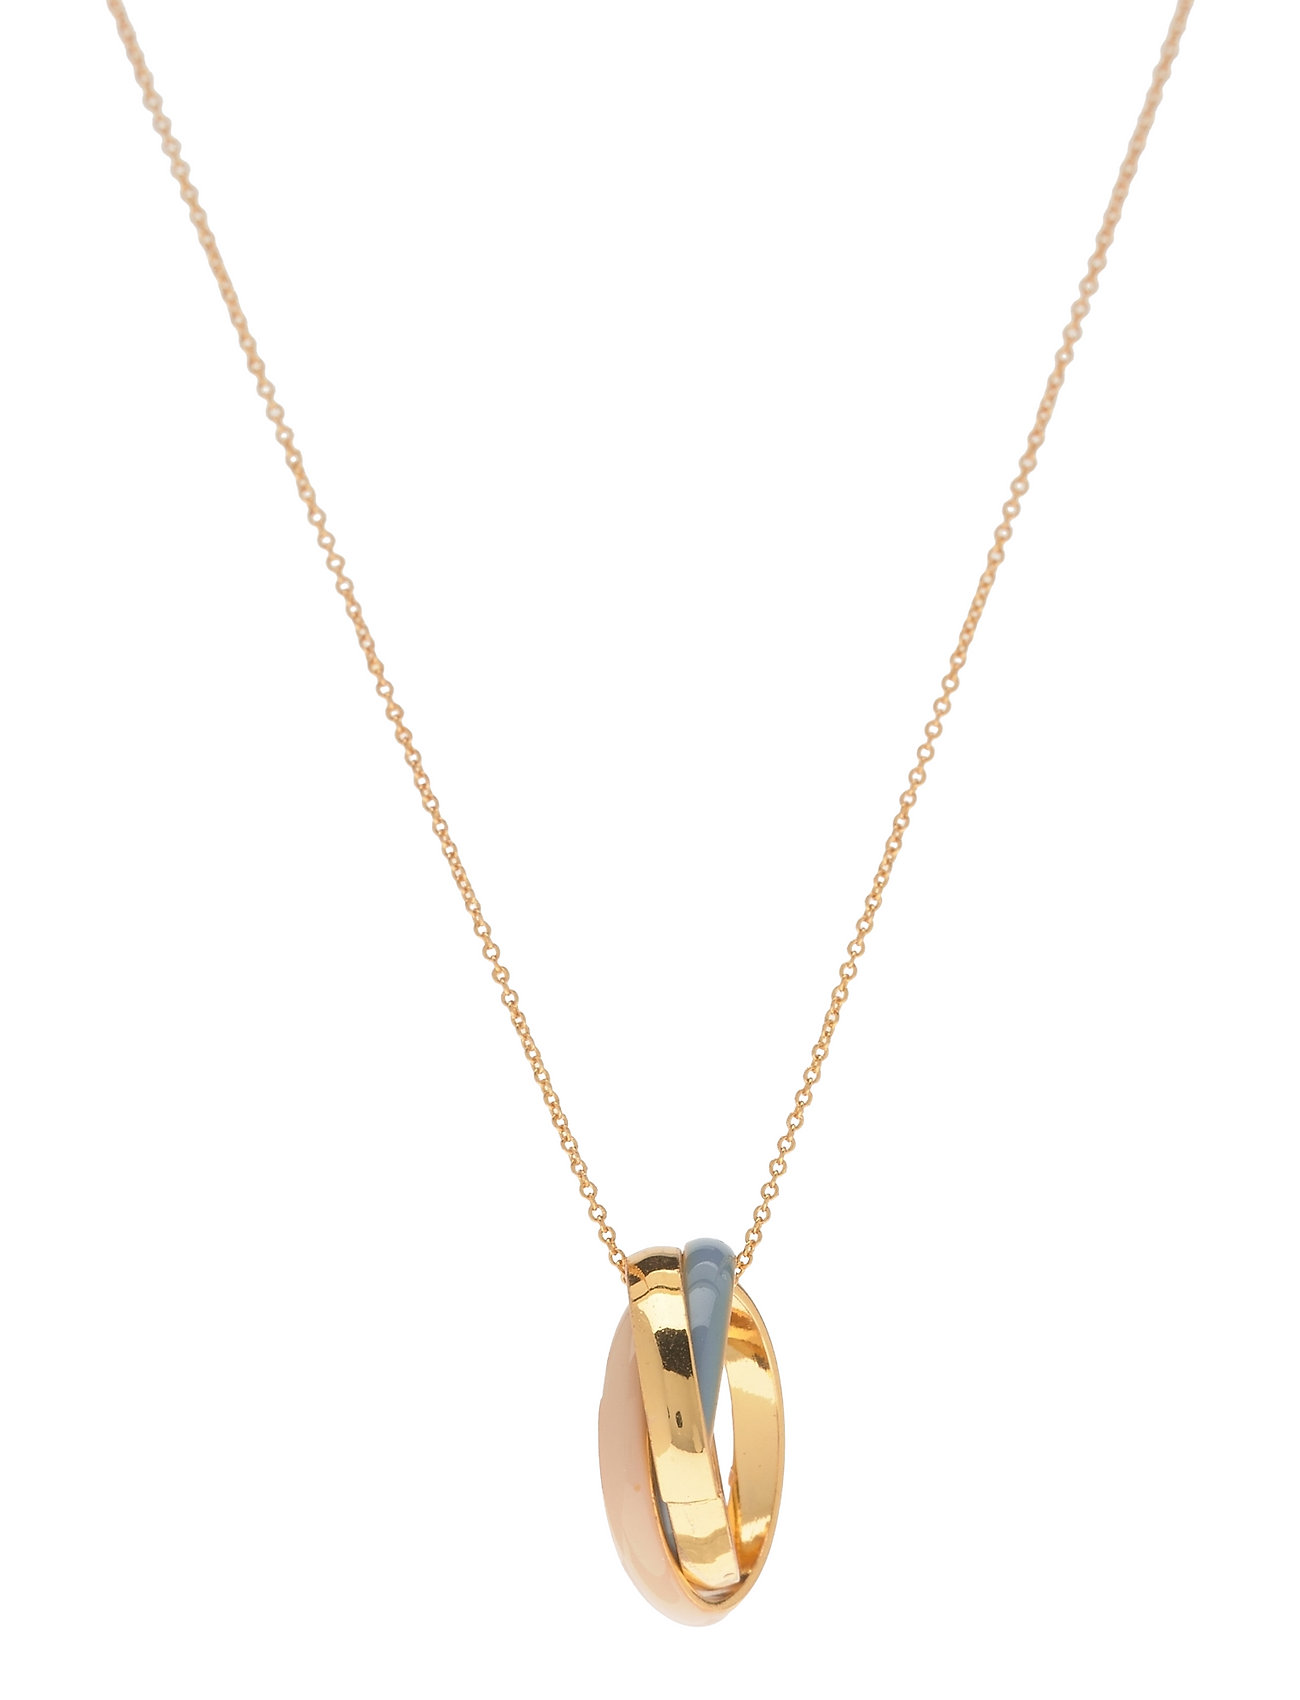 Agave Accessories Jewellery Necklaces Dainty Necklaces Guld Mango